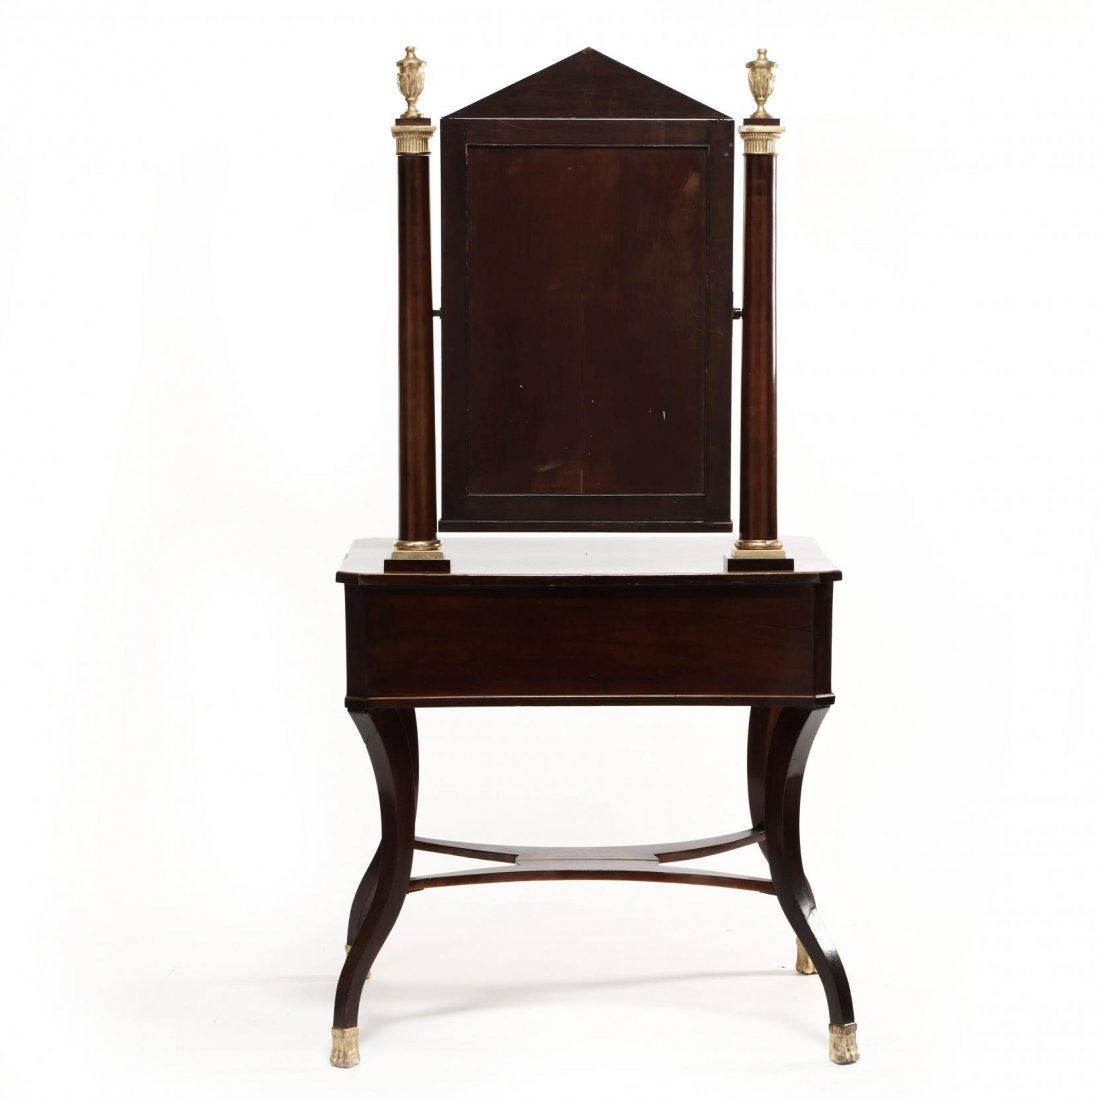 French Classical Revival Dressing Table - 9